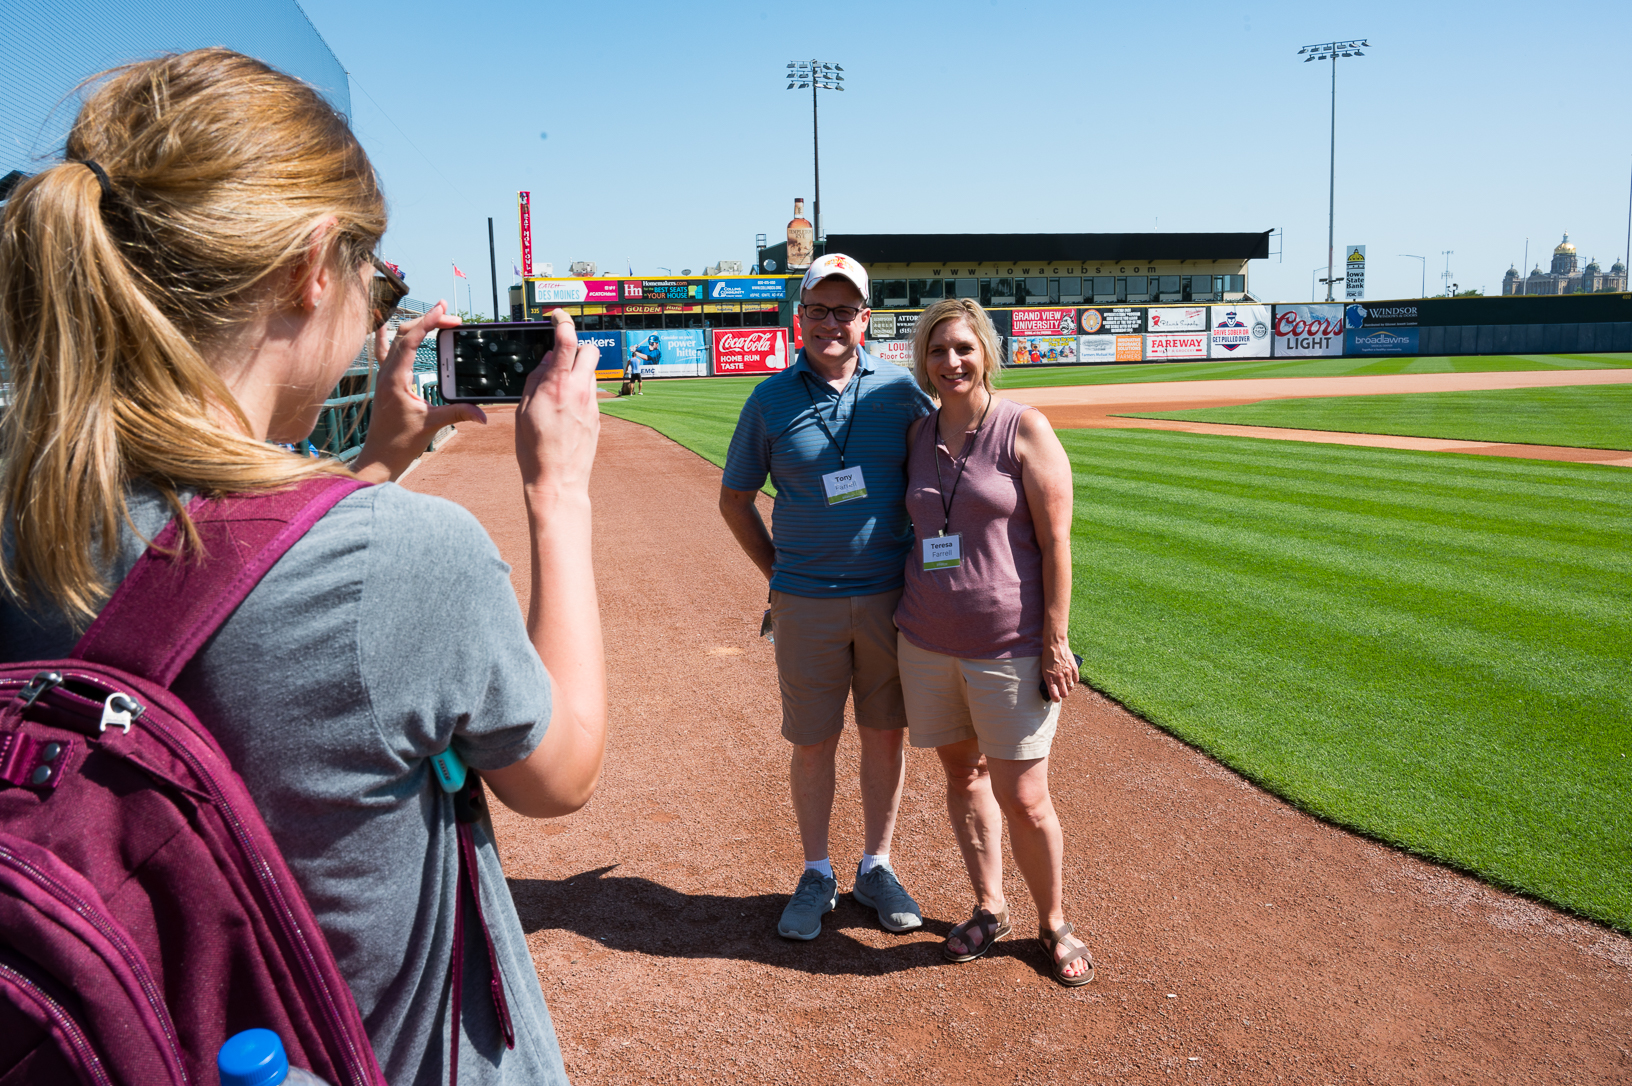 After learning about the Principal Park food system, participants toured the stadium with John Rodgers. Photo credit: Joseph L. Murphy/Iowa Soybean Association